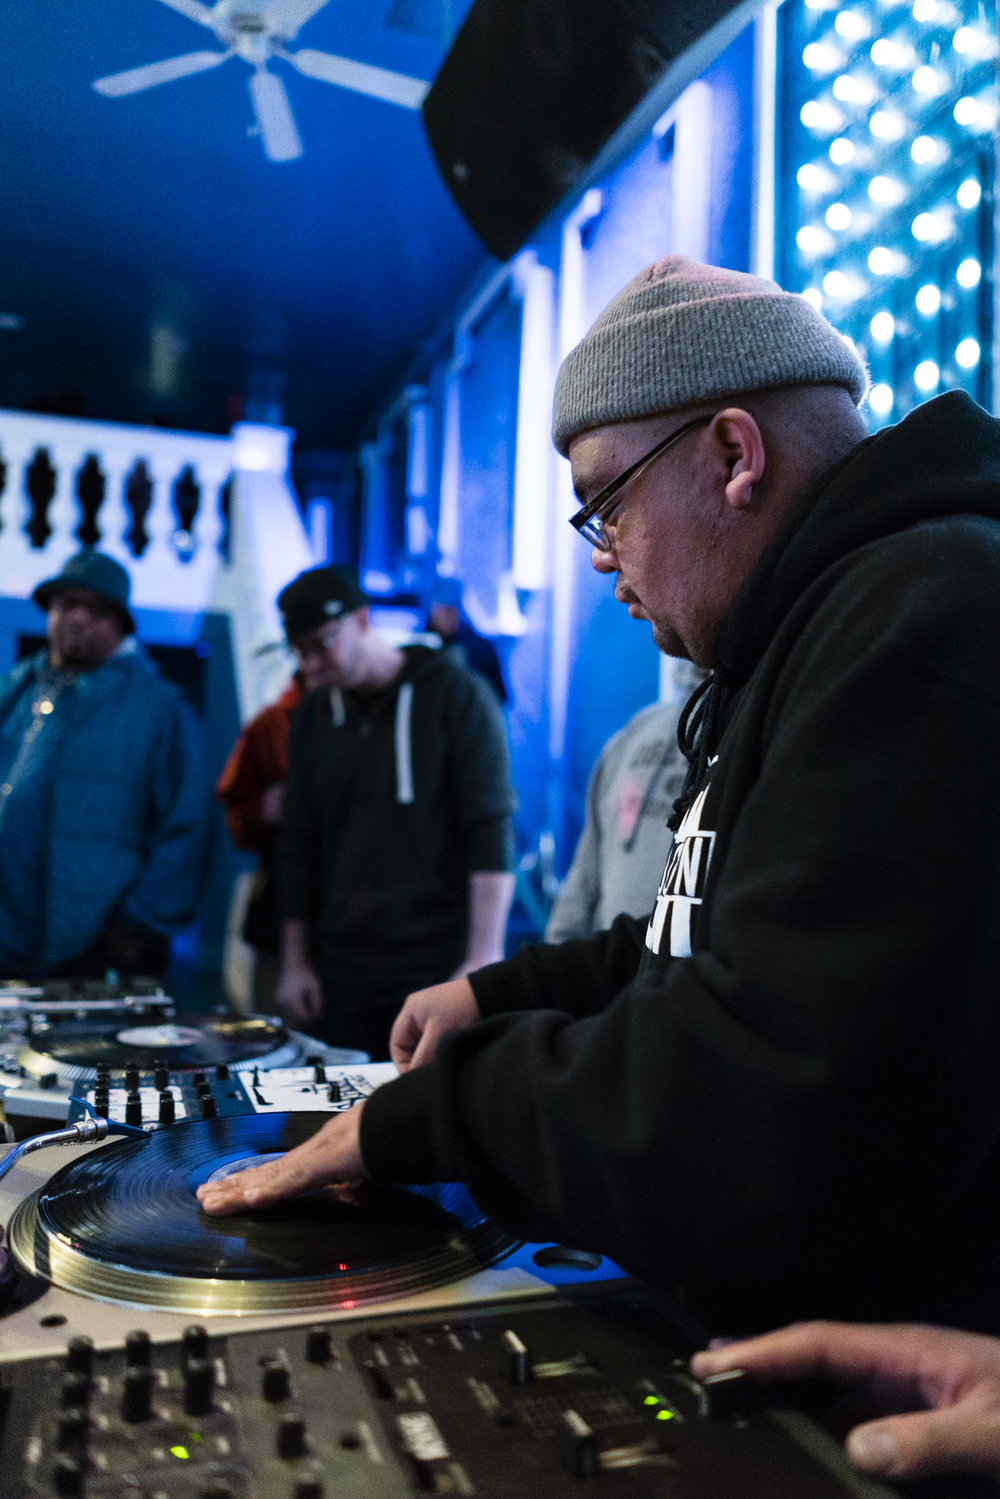 2017_02_02_Skratch Lounge_0006_Export.jpg